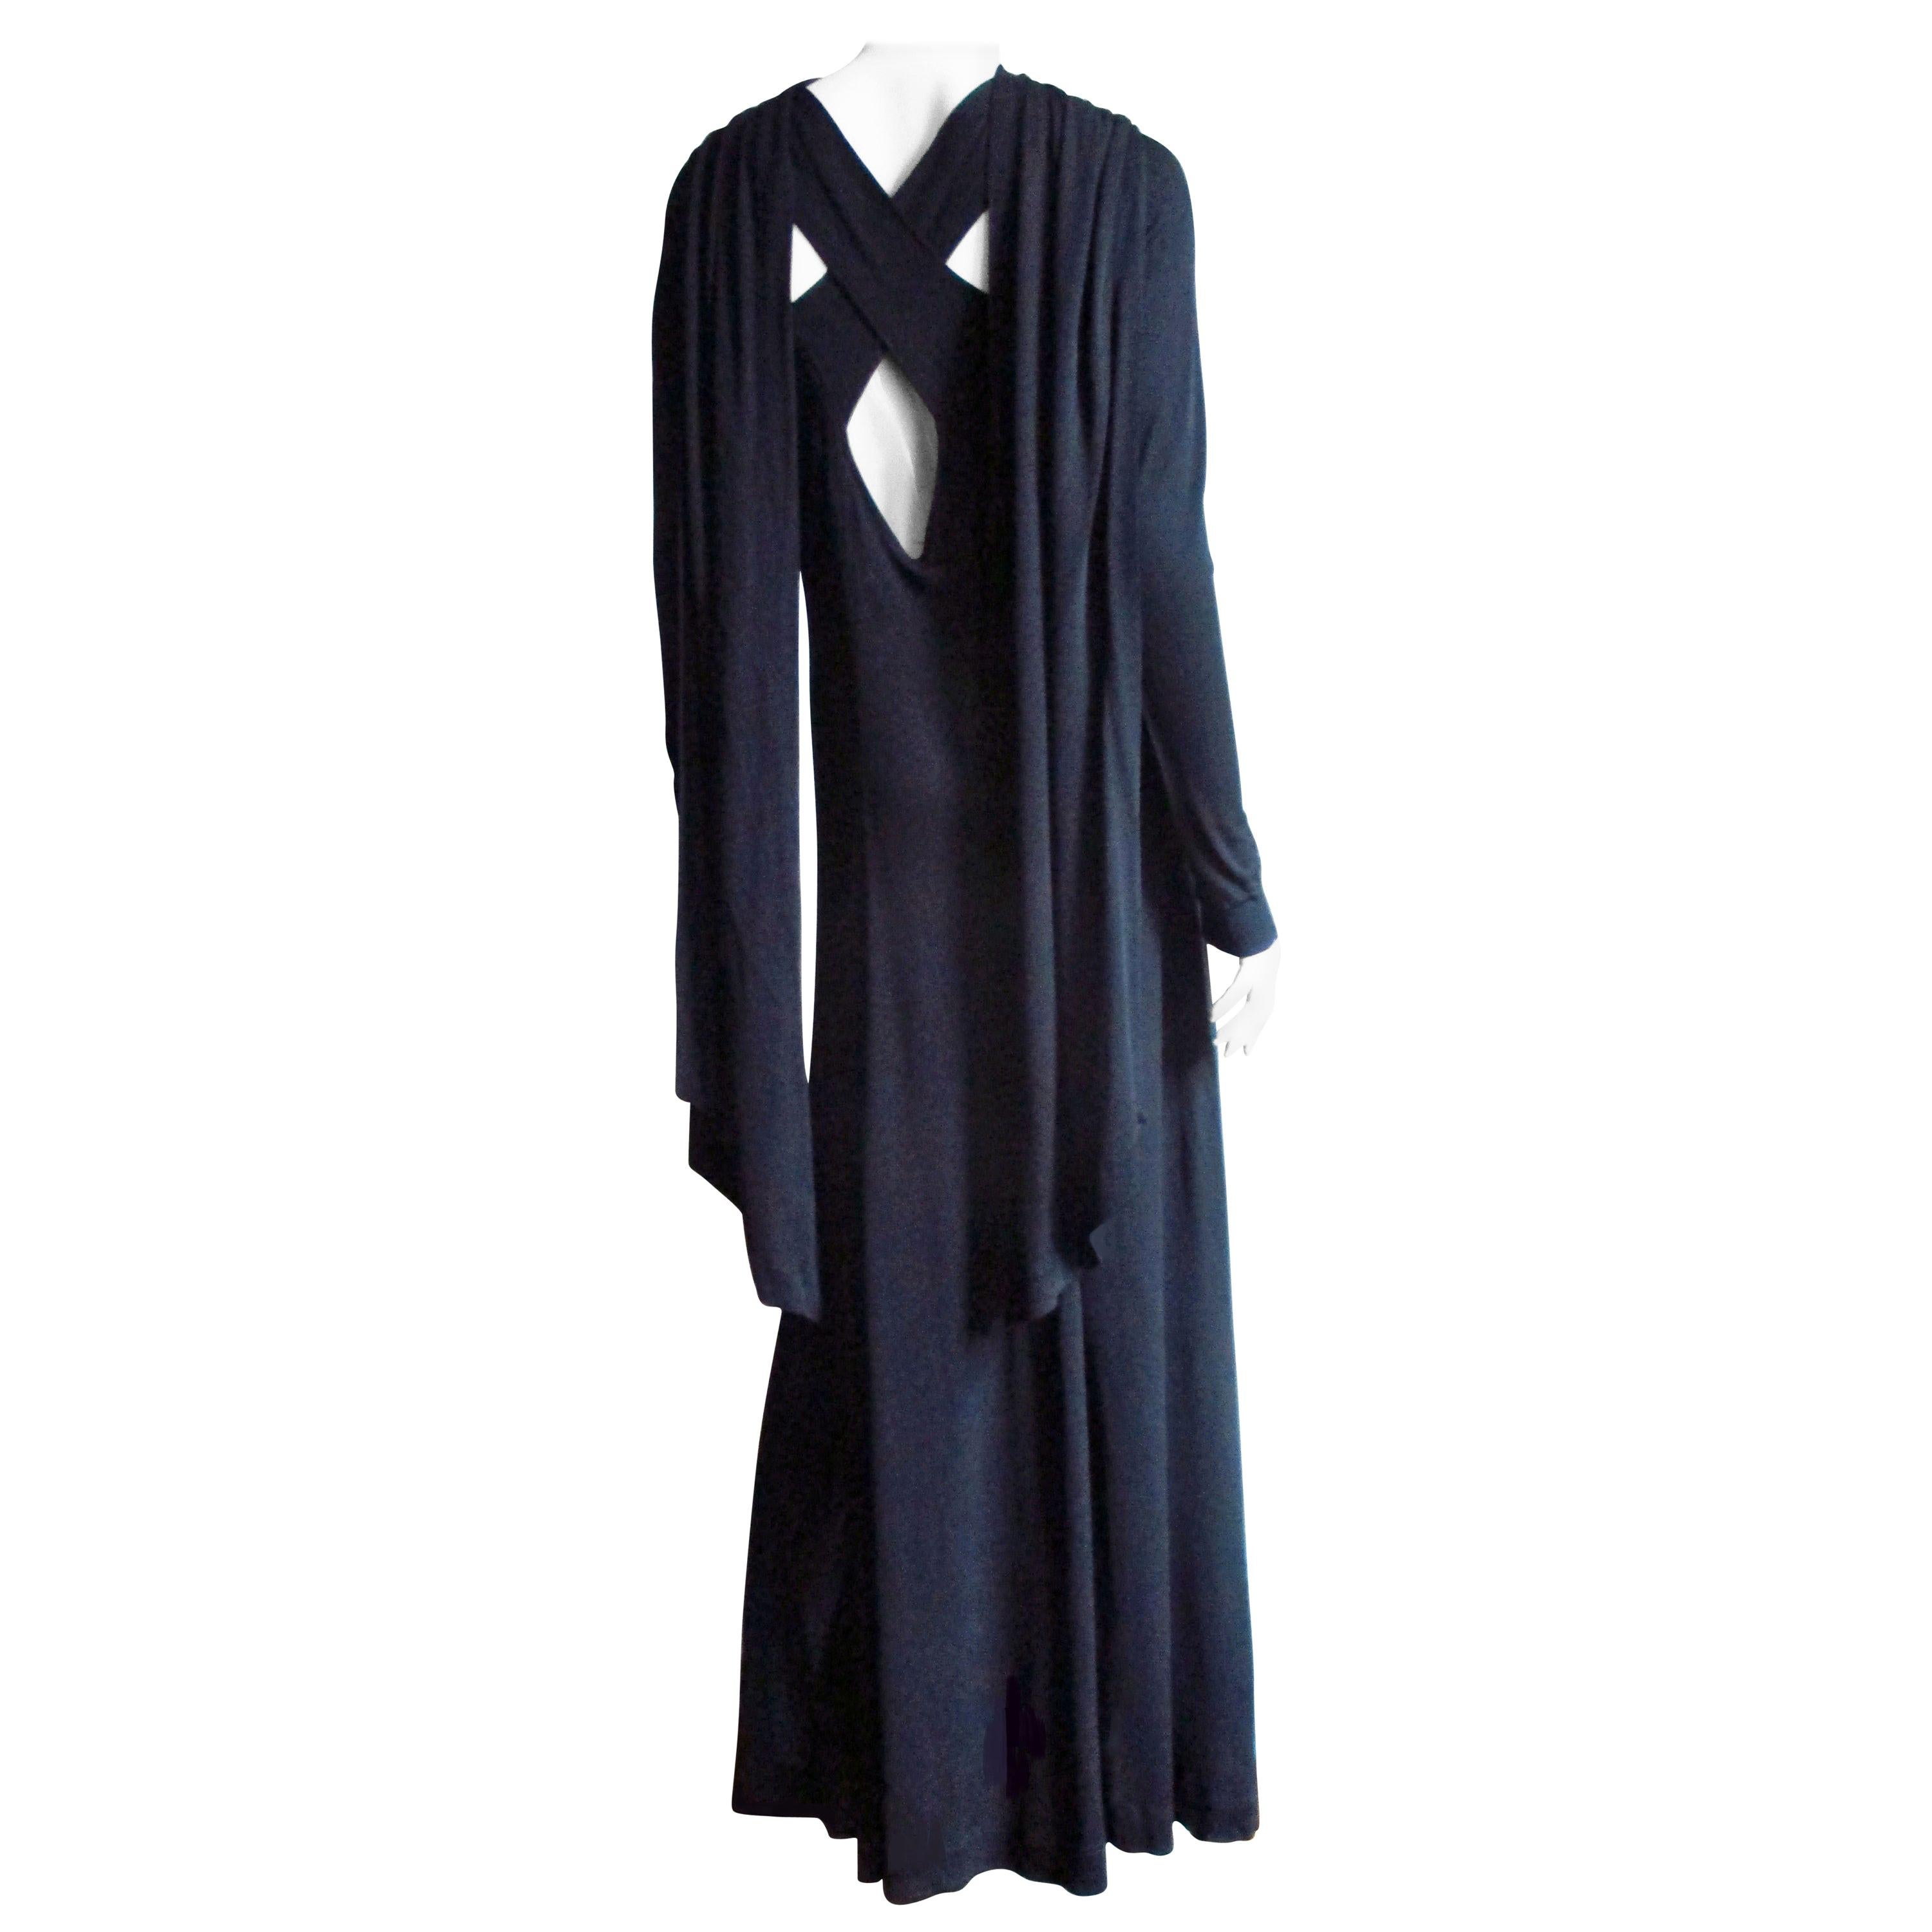 Jean Muir Cut out Maxi Dress with Back Draping 1970s